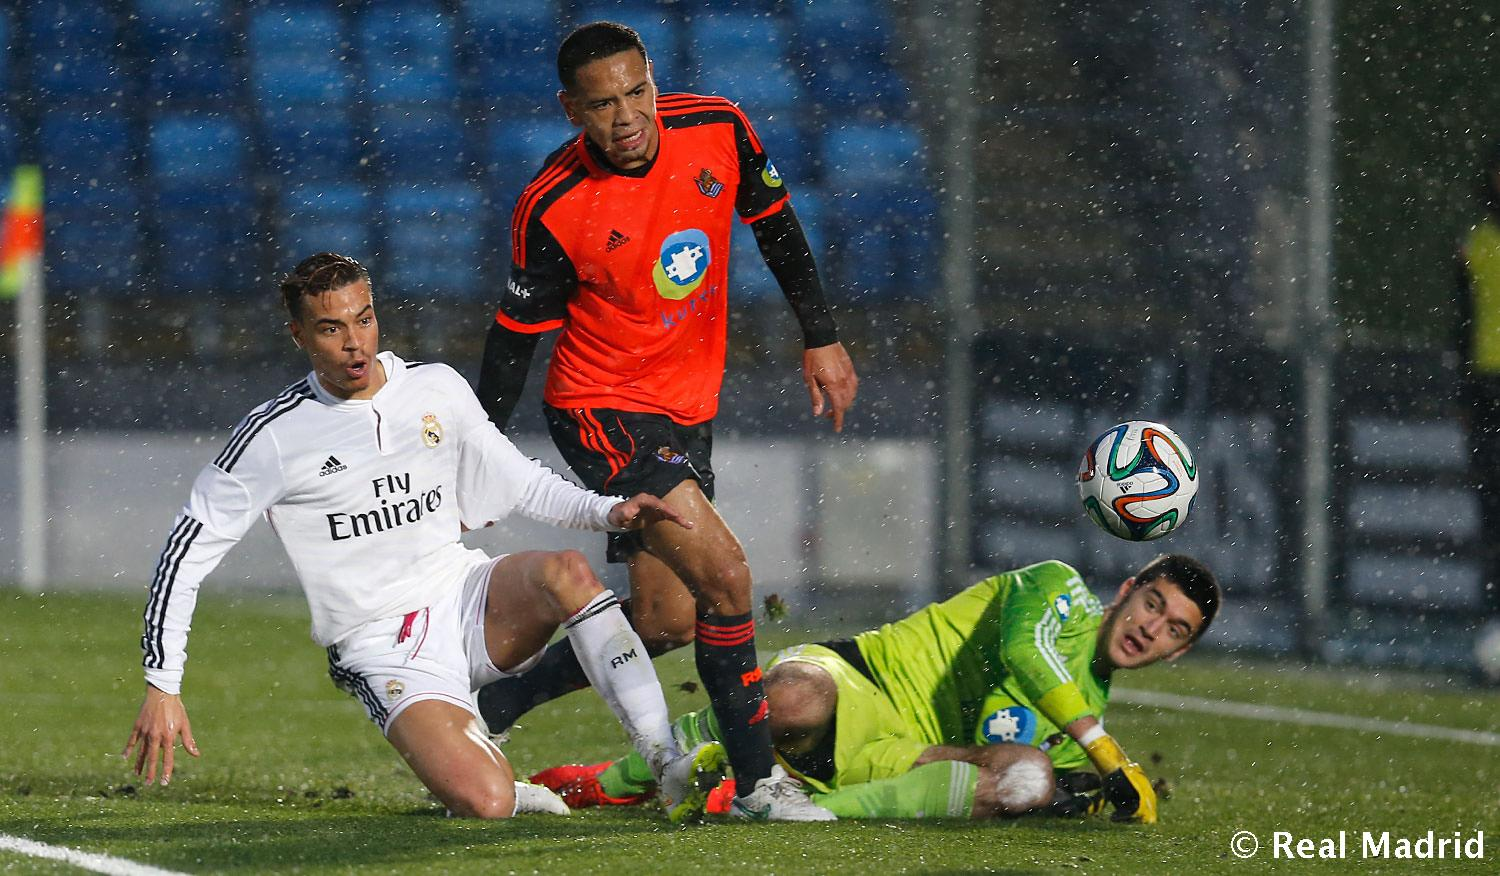 Real Madrid - Real Madrid Castilla - Real Sociedad B - 13-12-2014